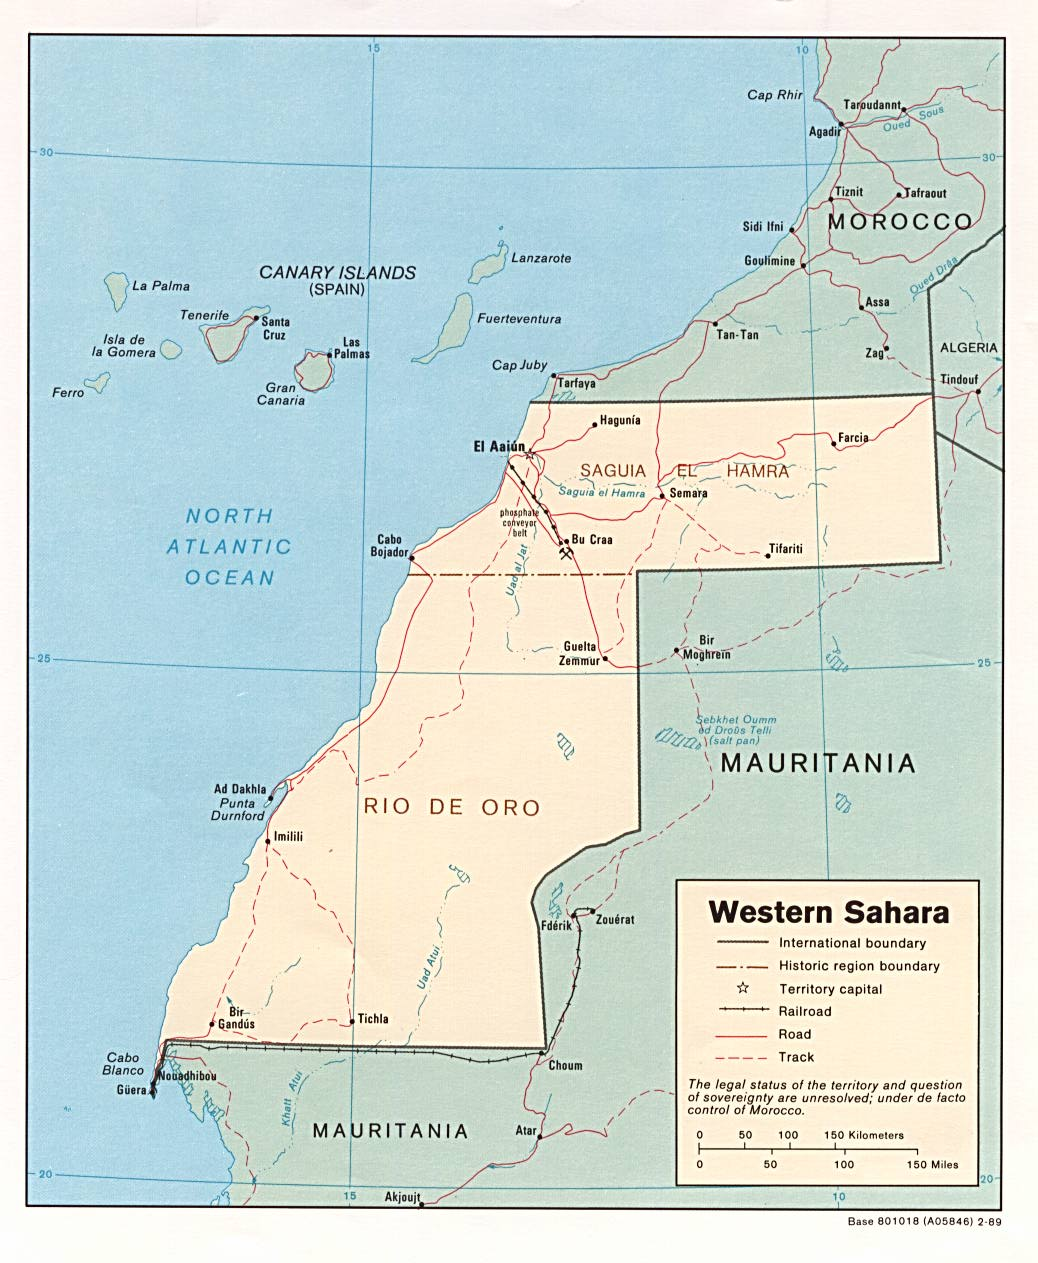 Concluding Remarks on MEI's Western Sahara Series